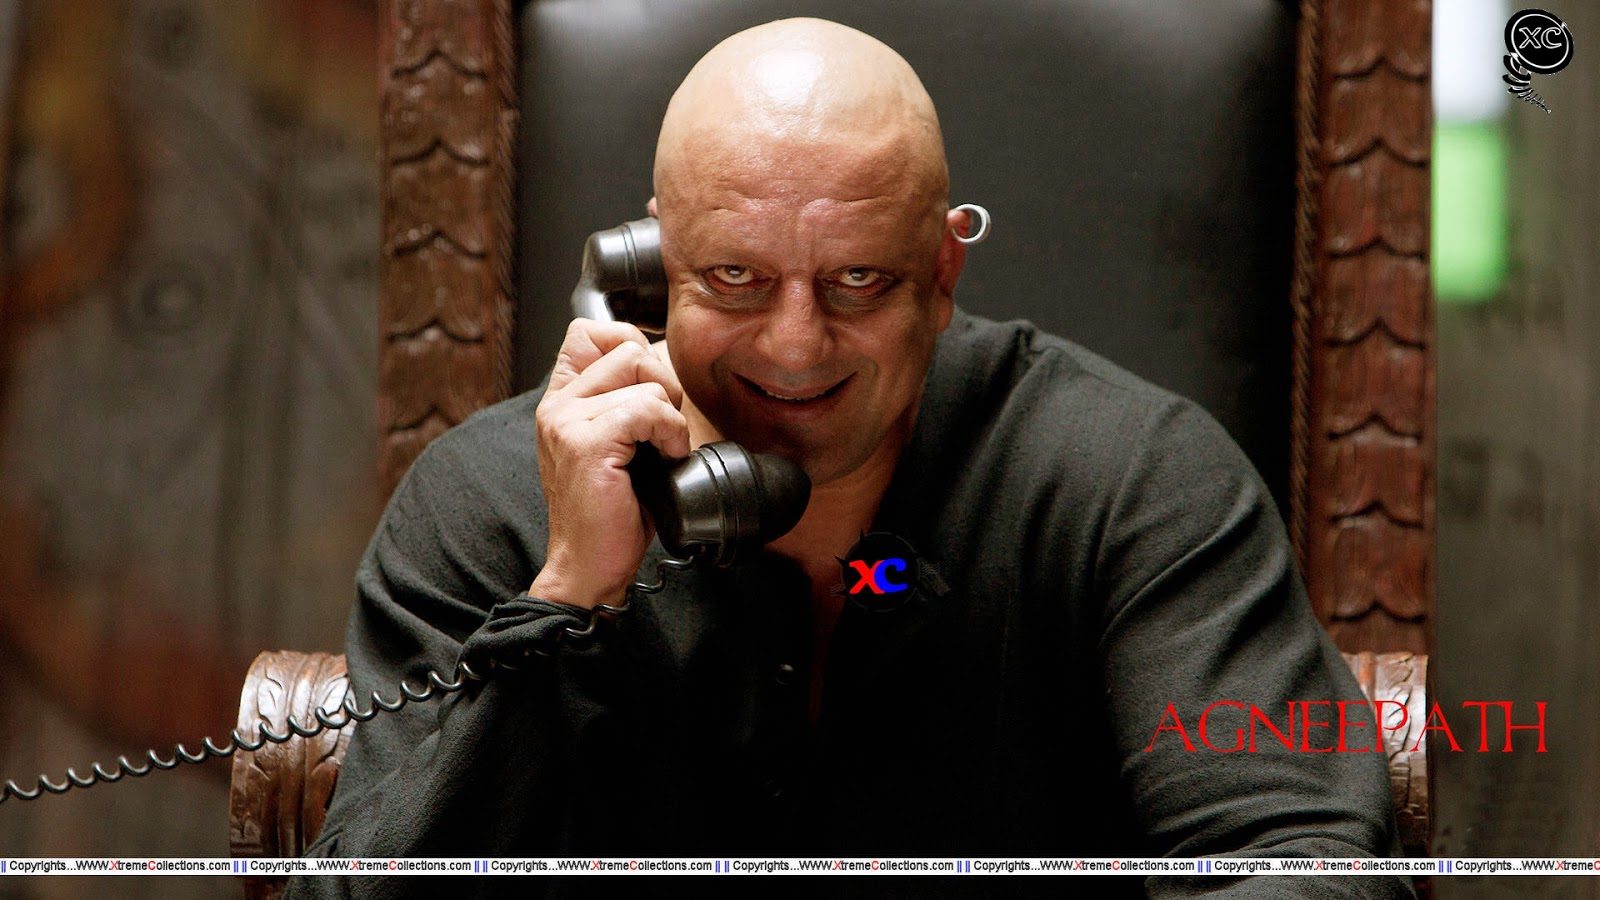 Agneepath Hd Movie